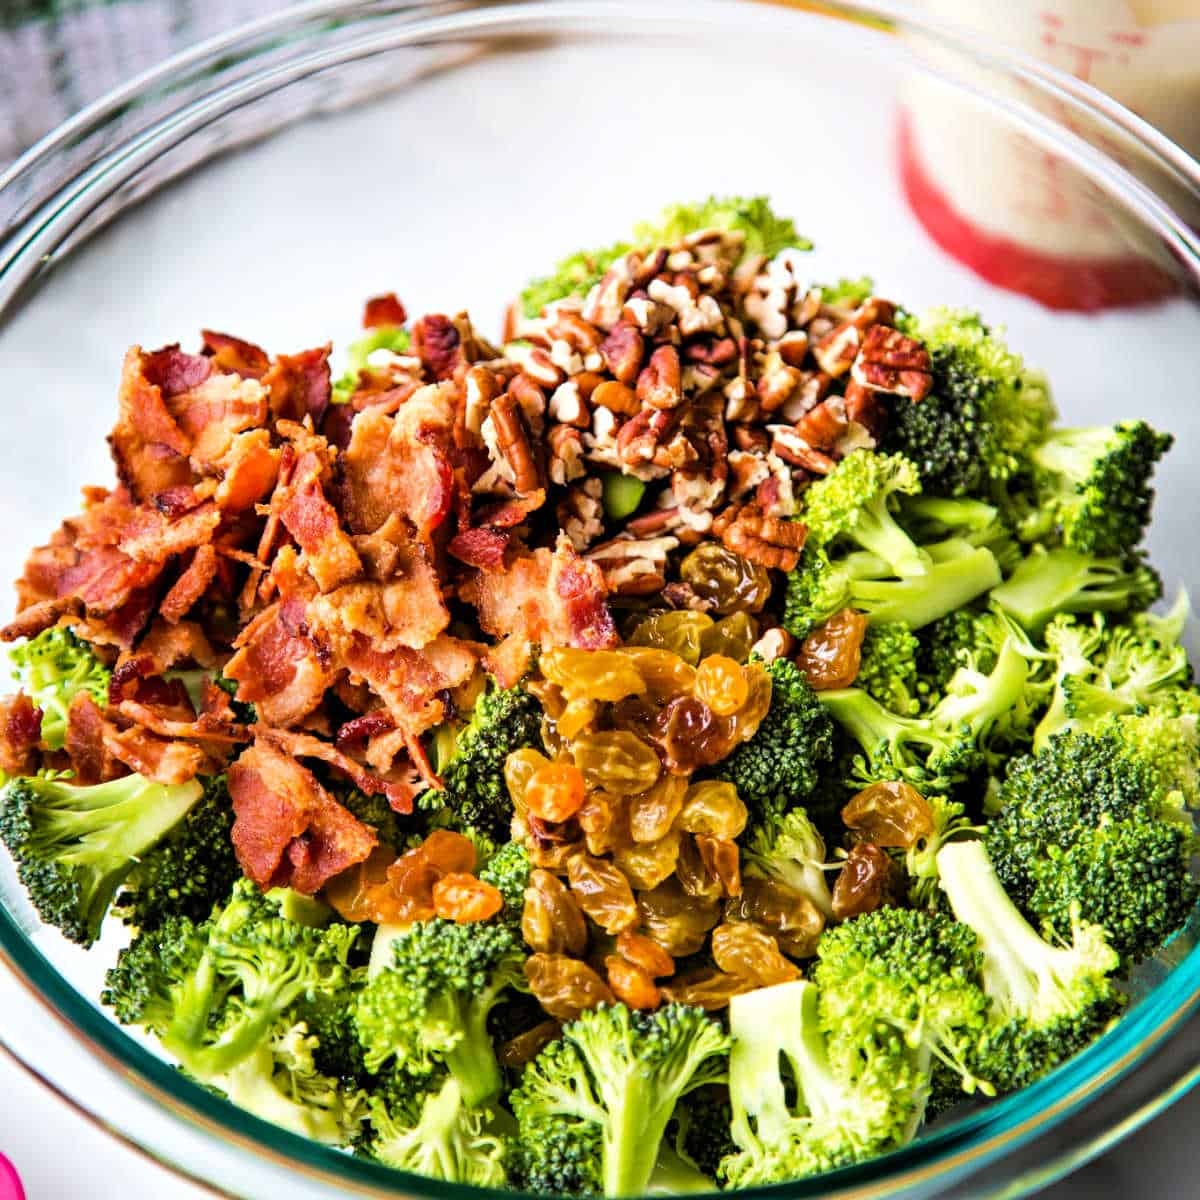 broccoli with pecans, golden raisins, and bacon